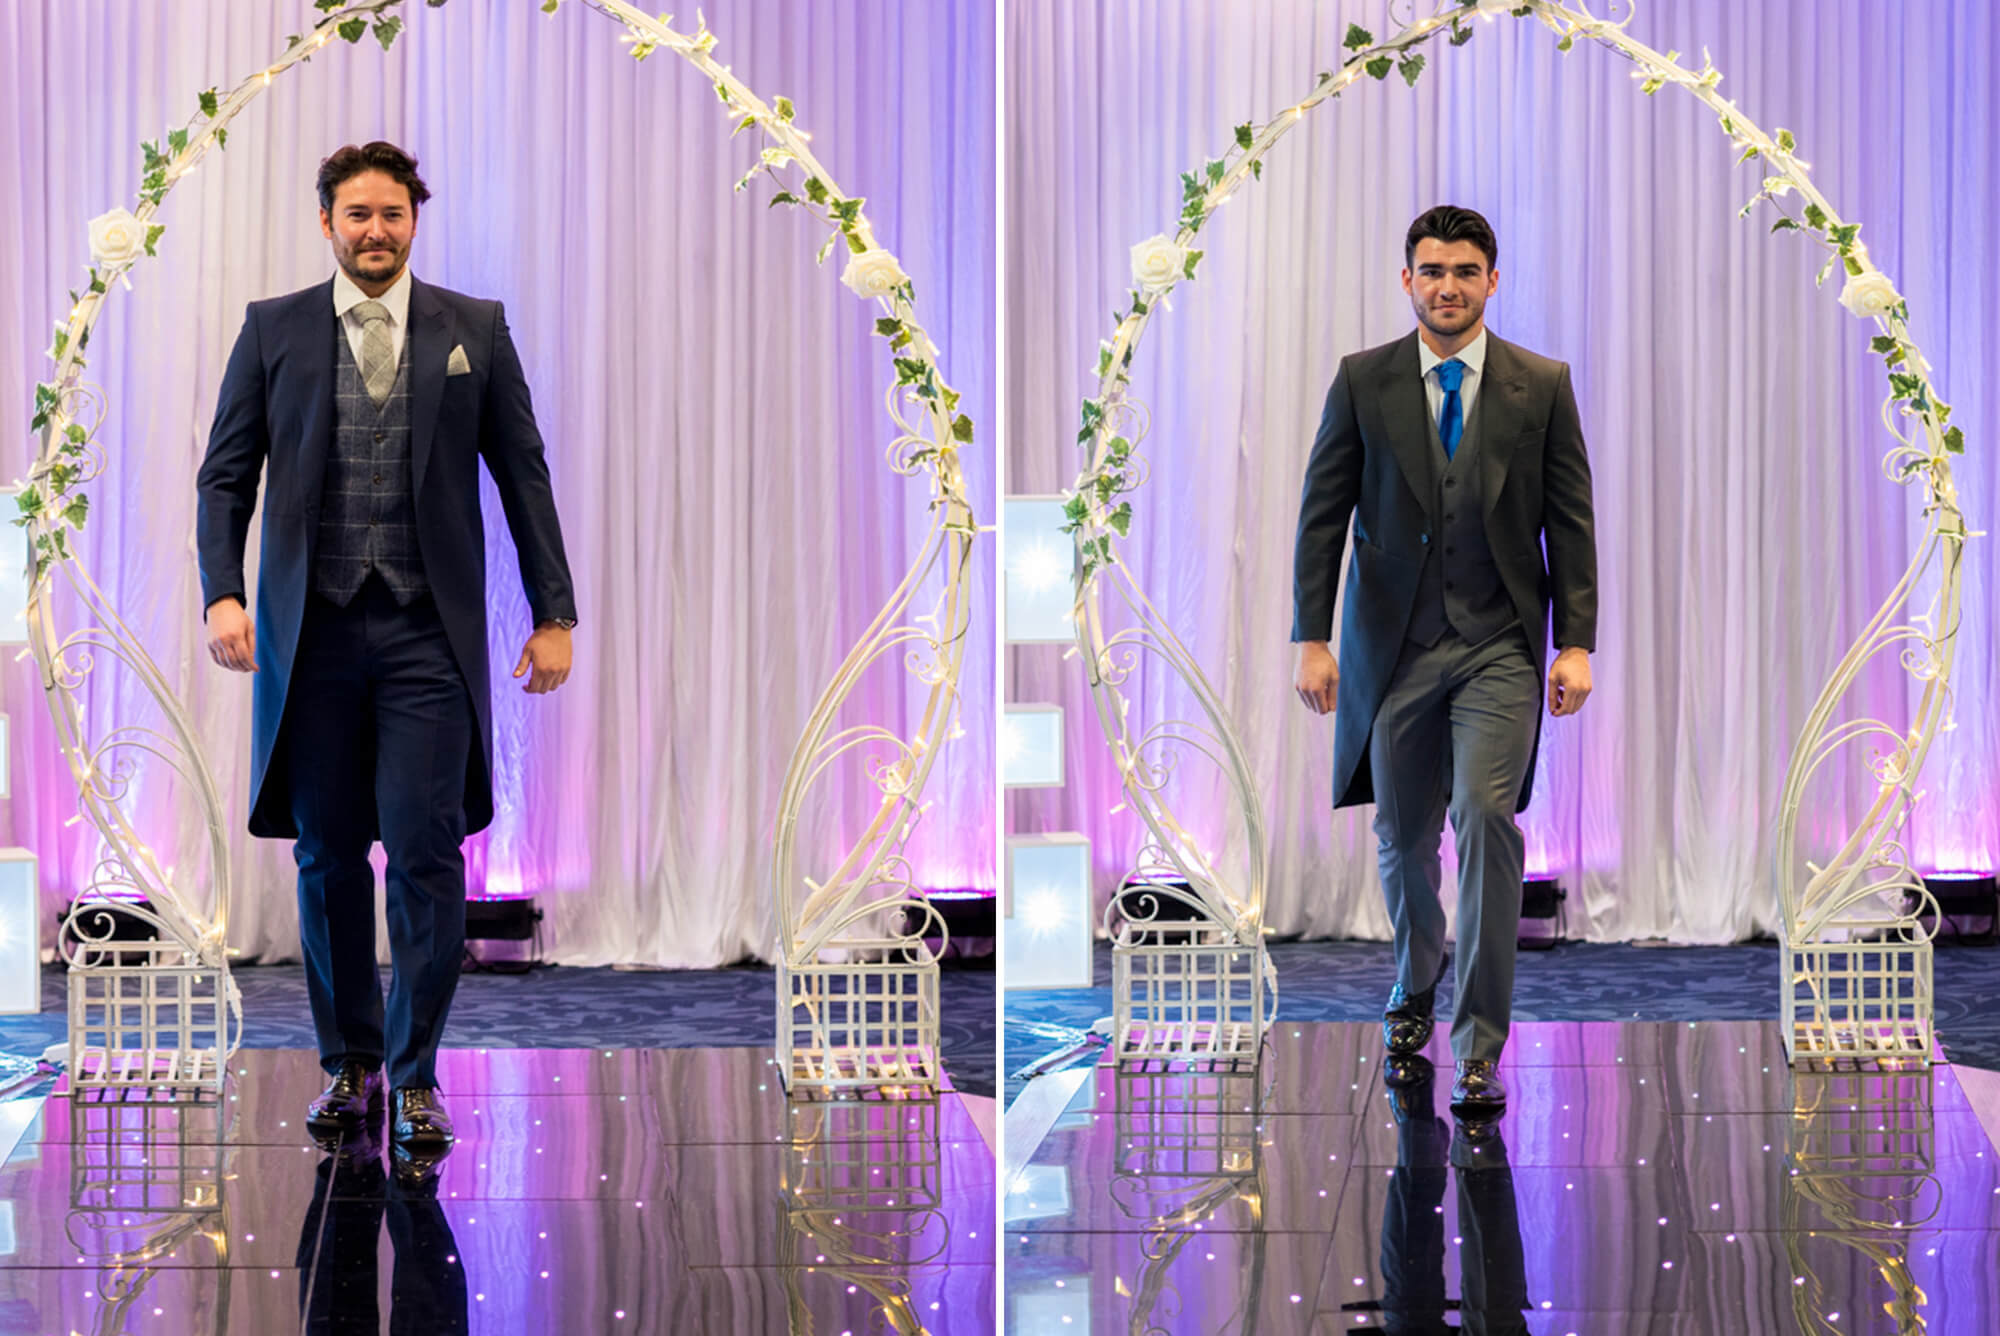 Grooms walking down catwalk